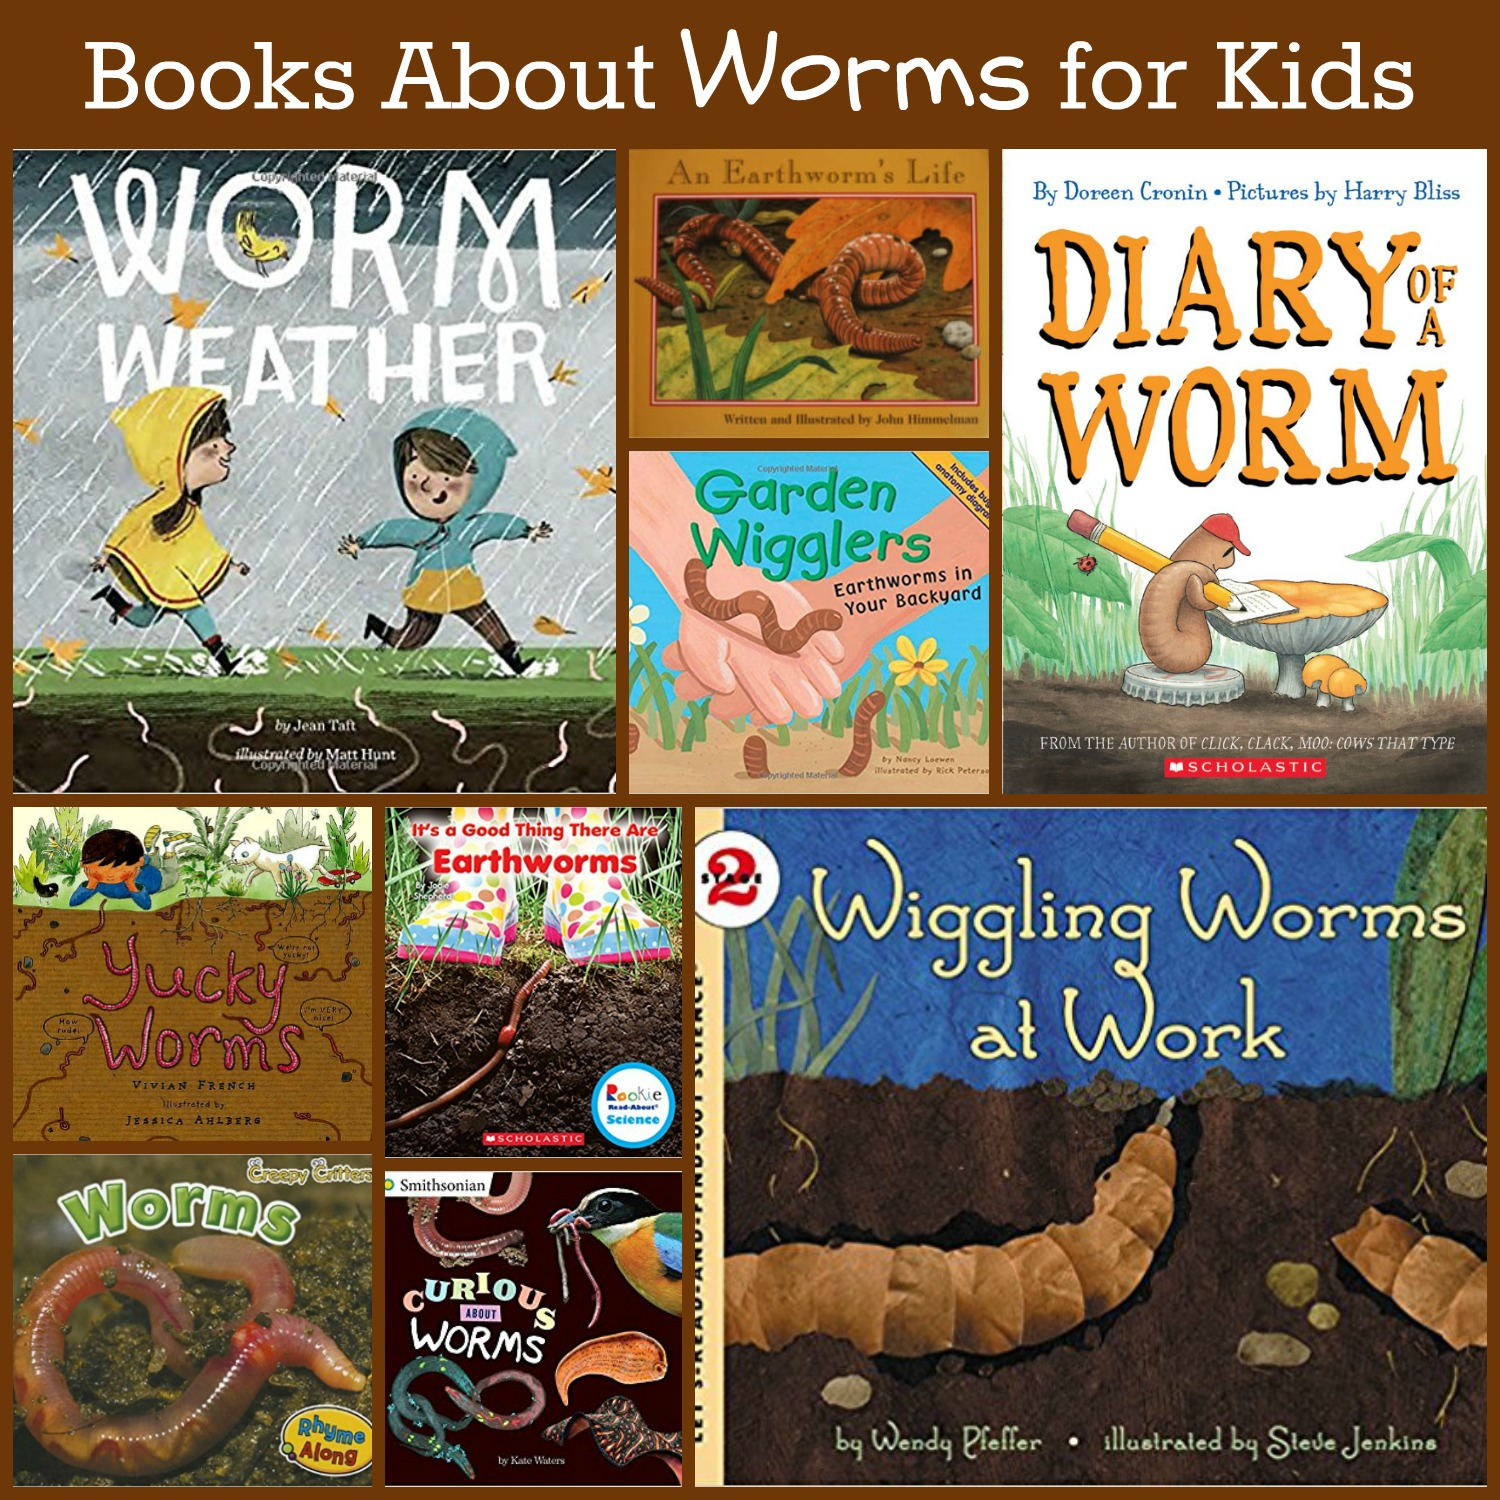 Preschool books about worms.